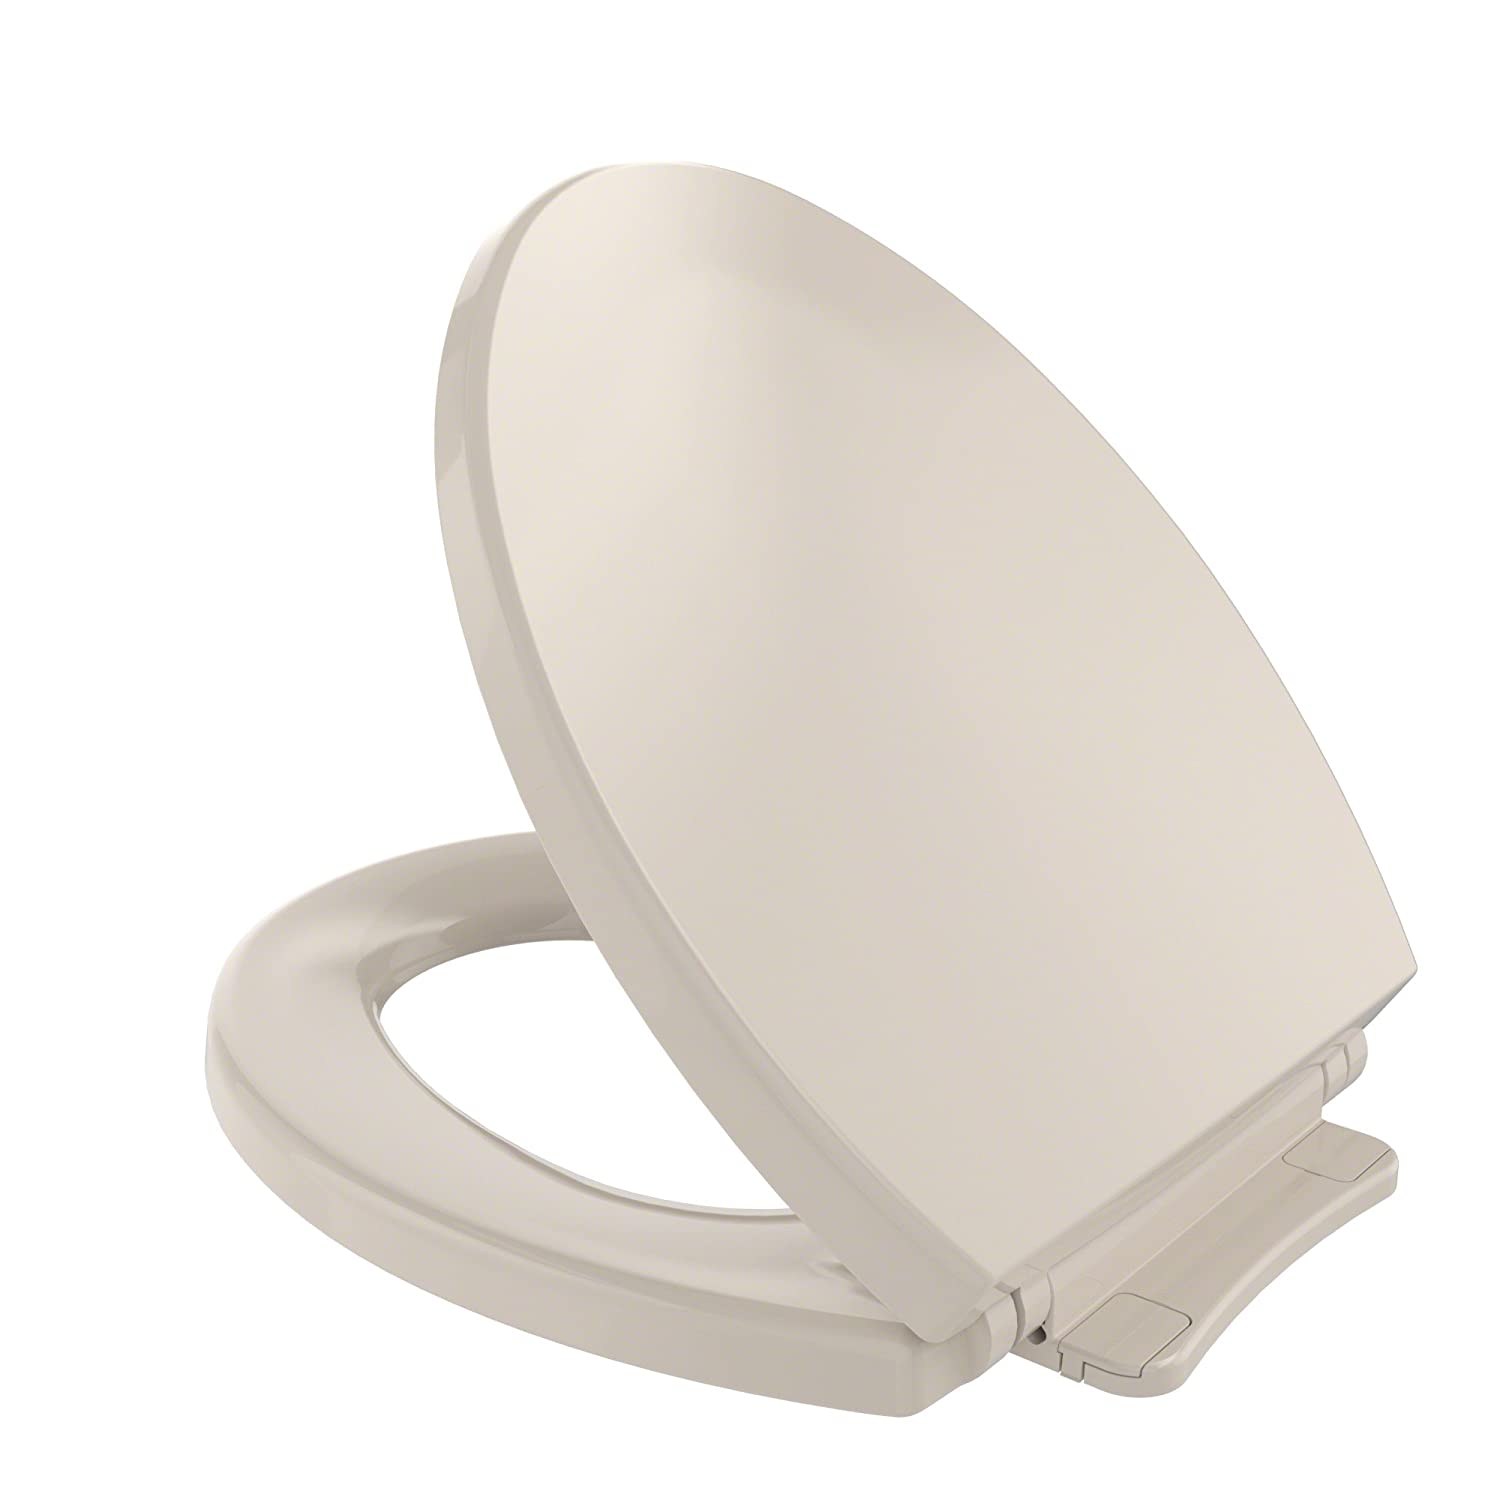 Toto SS114 01 SoftClose Elongated Toilet Seat Cover, Cotton White SS114#01